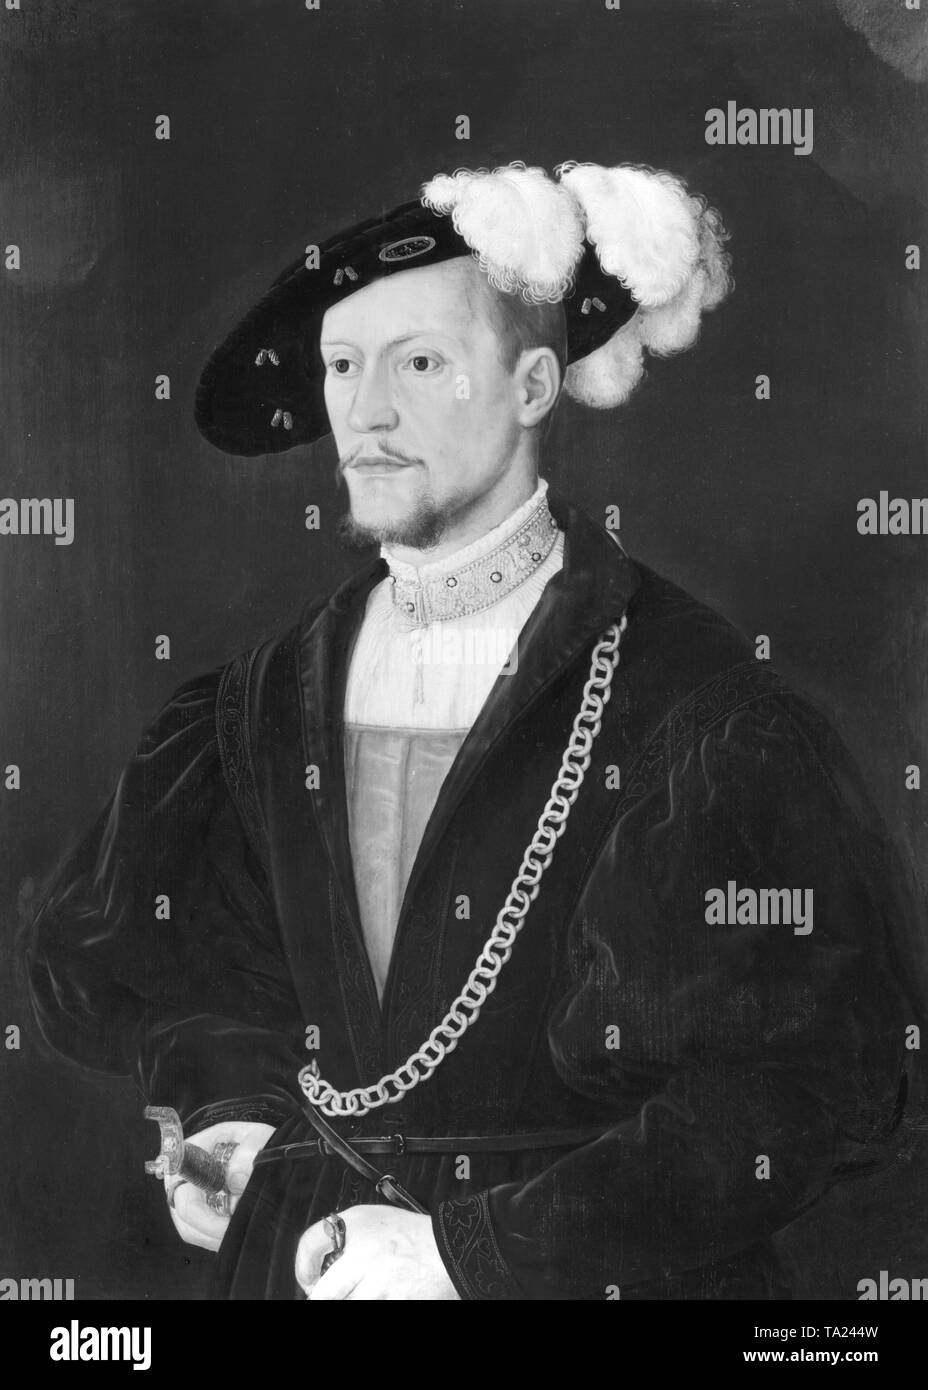 This painting by Bartel Beham is a portrait of Philip the Contentious. He was Count Palatine and Duke of Palatinate Neuburg from 1522. He was the son of Count Palatine Rupprecht at the Rhine and Elizabeth of Bavaria-Landshut. Undated painting Stock Photo